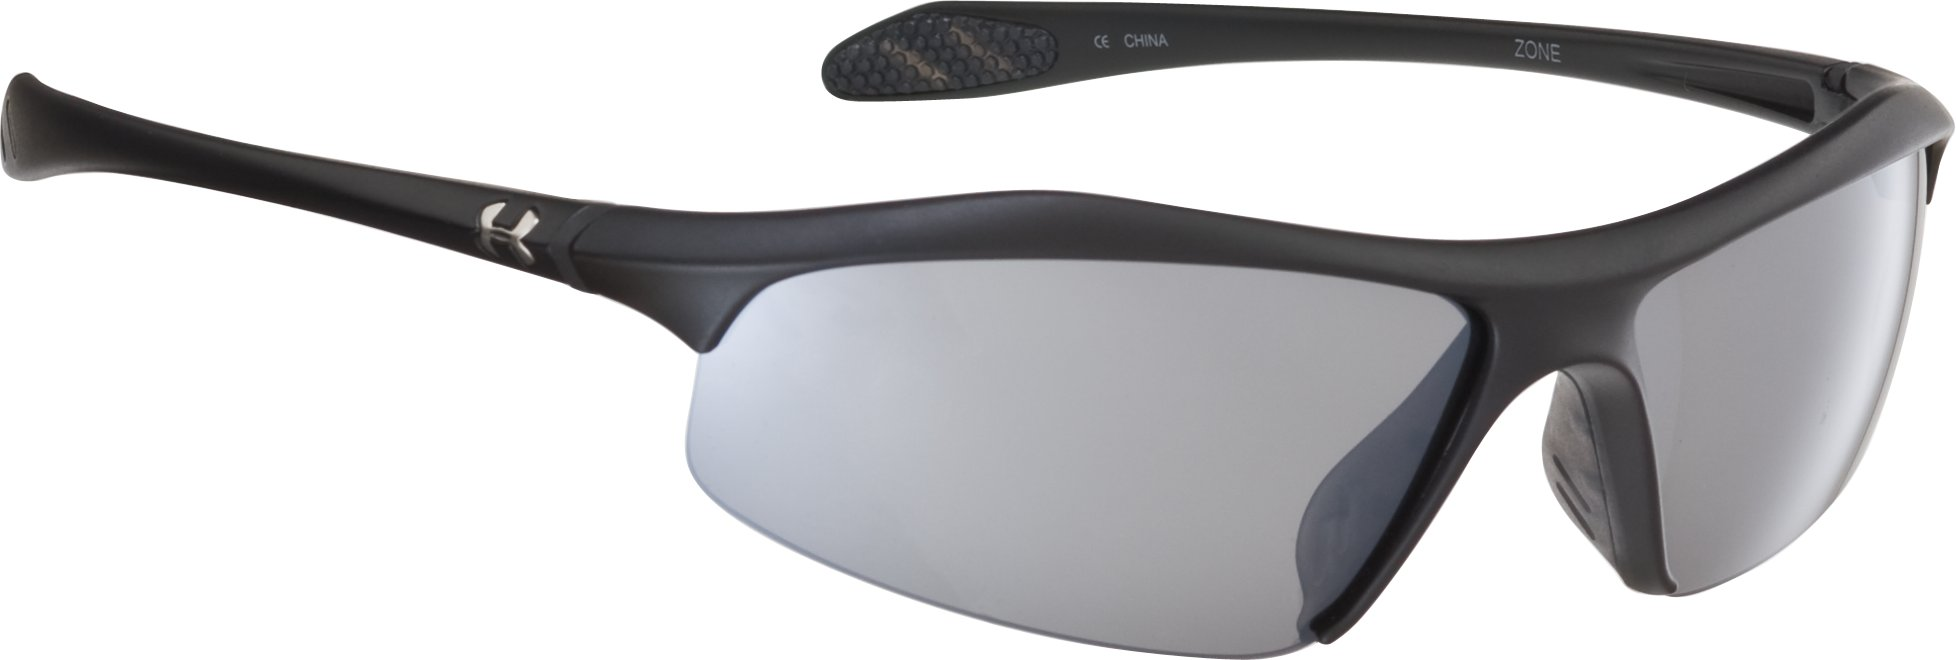 Zone Multiflection™ Sunglasses, Satin Black